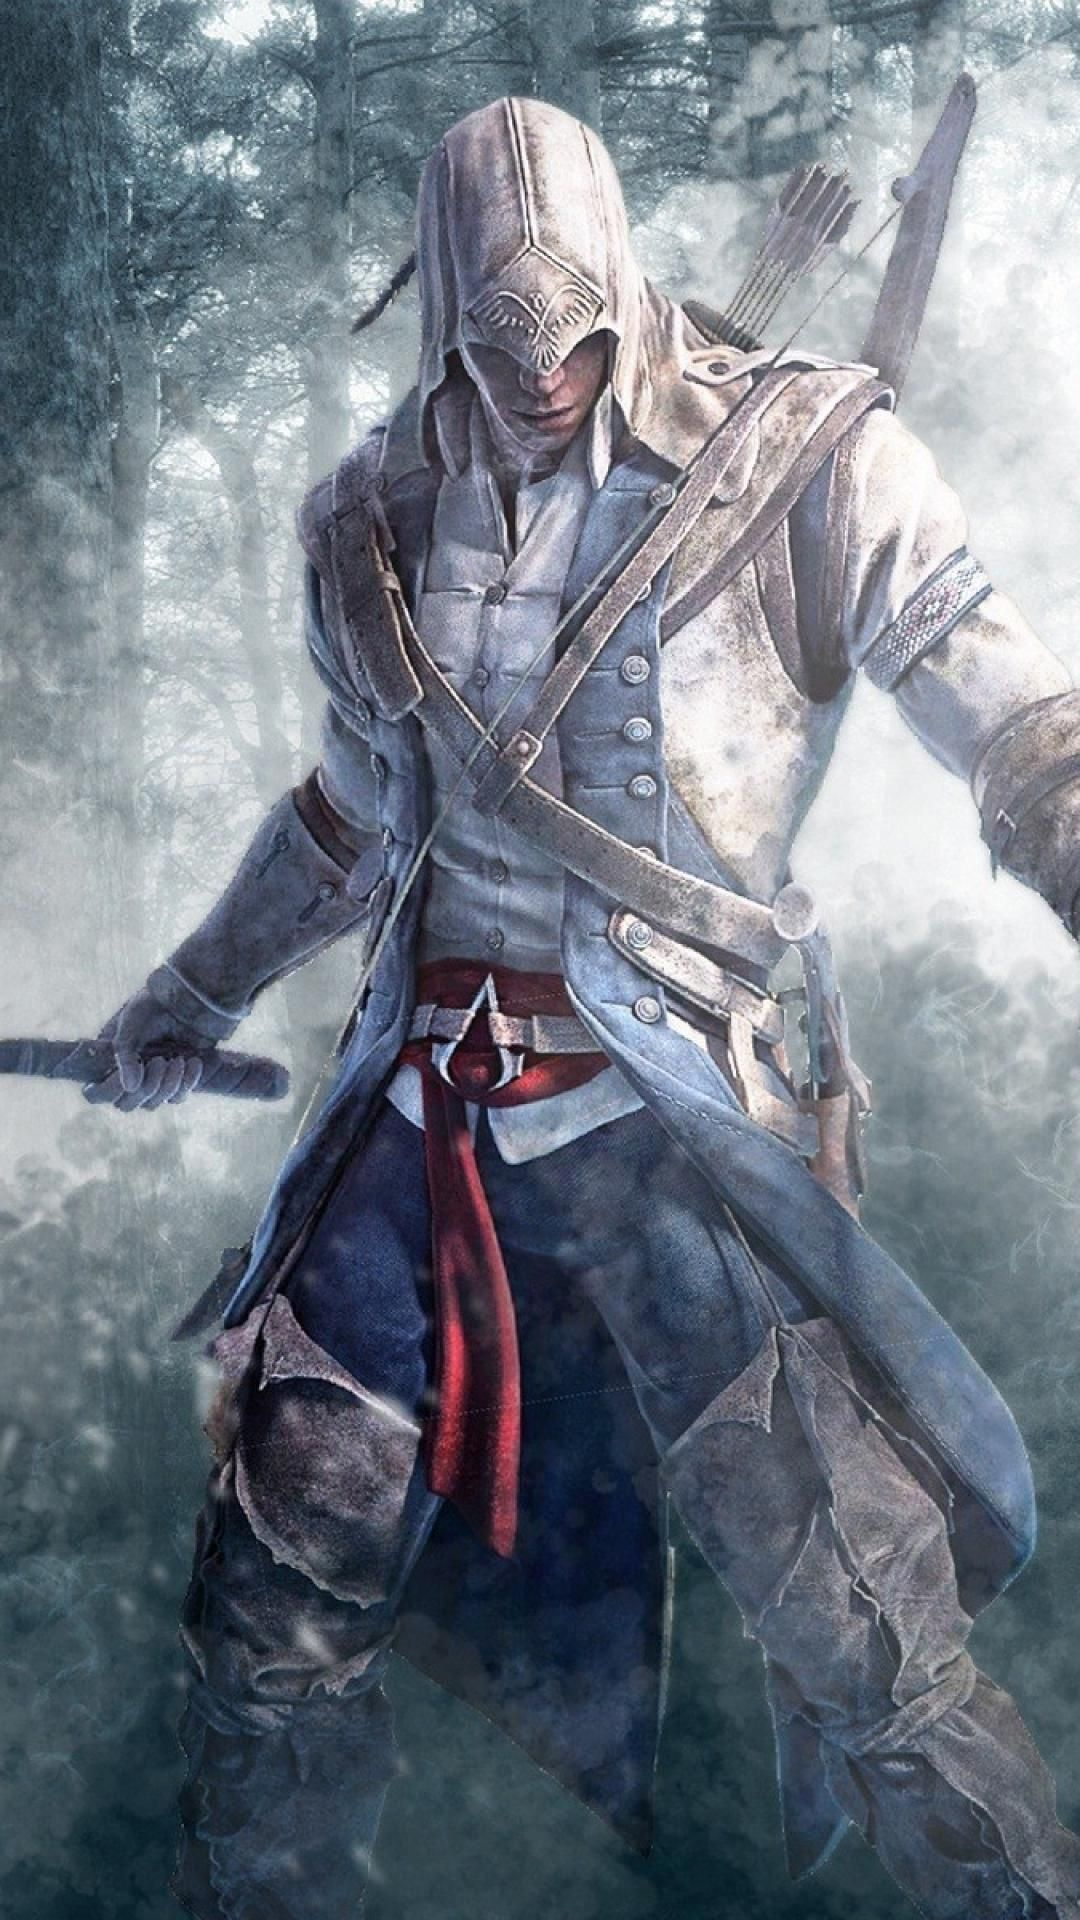 Animated Wallpapers For Android 1080x1920 Assassins Creed 3 Animated Assassins Creed Rogue Assassins Creed Art Assassin S Creed